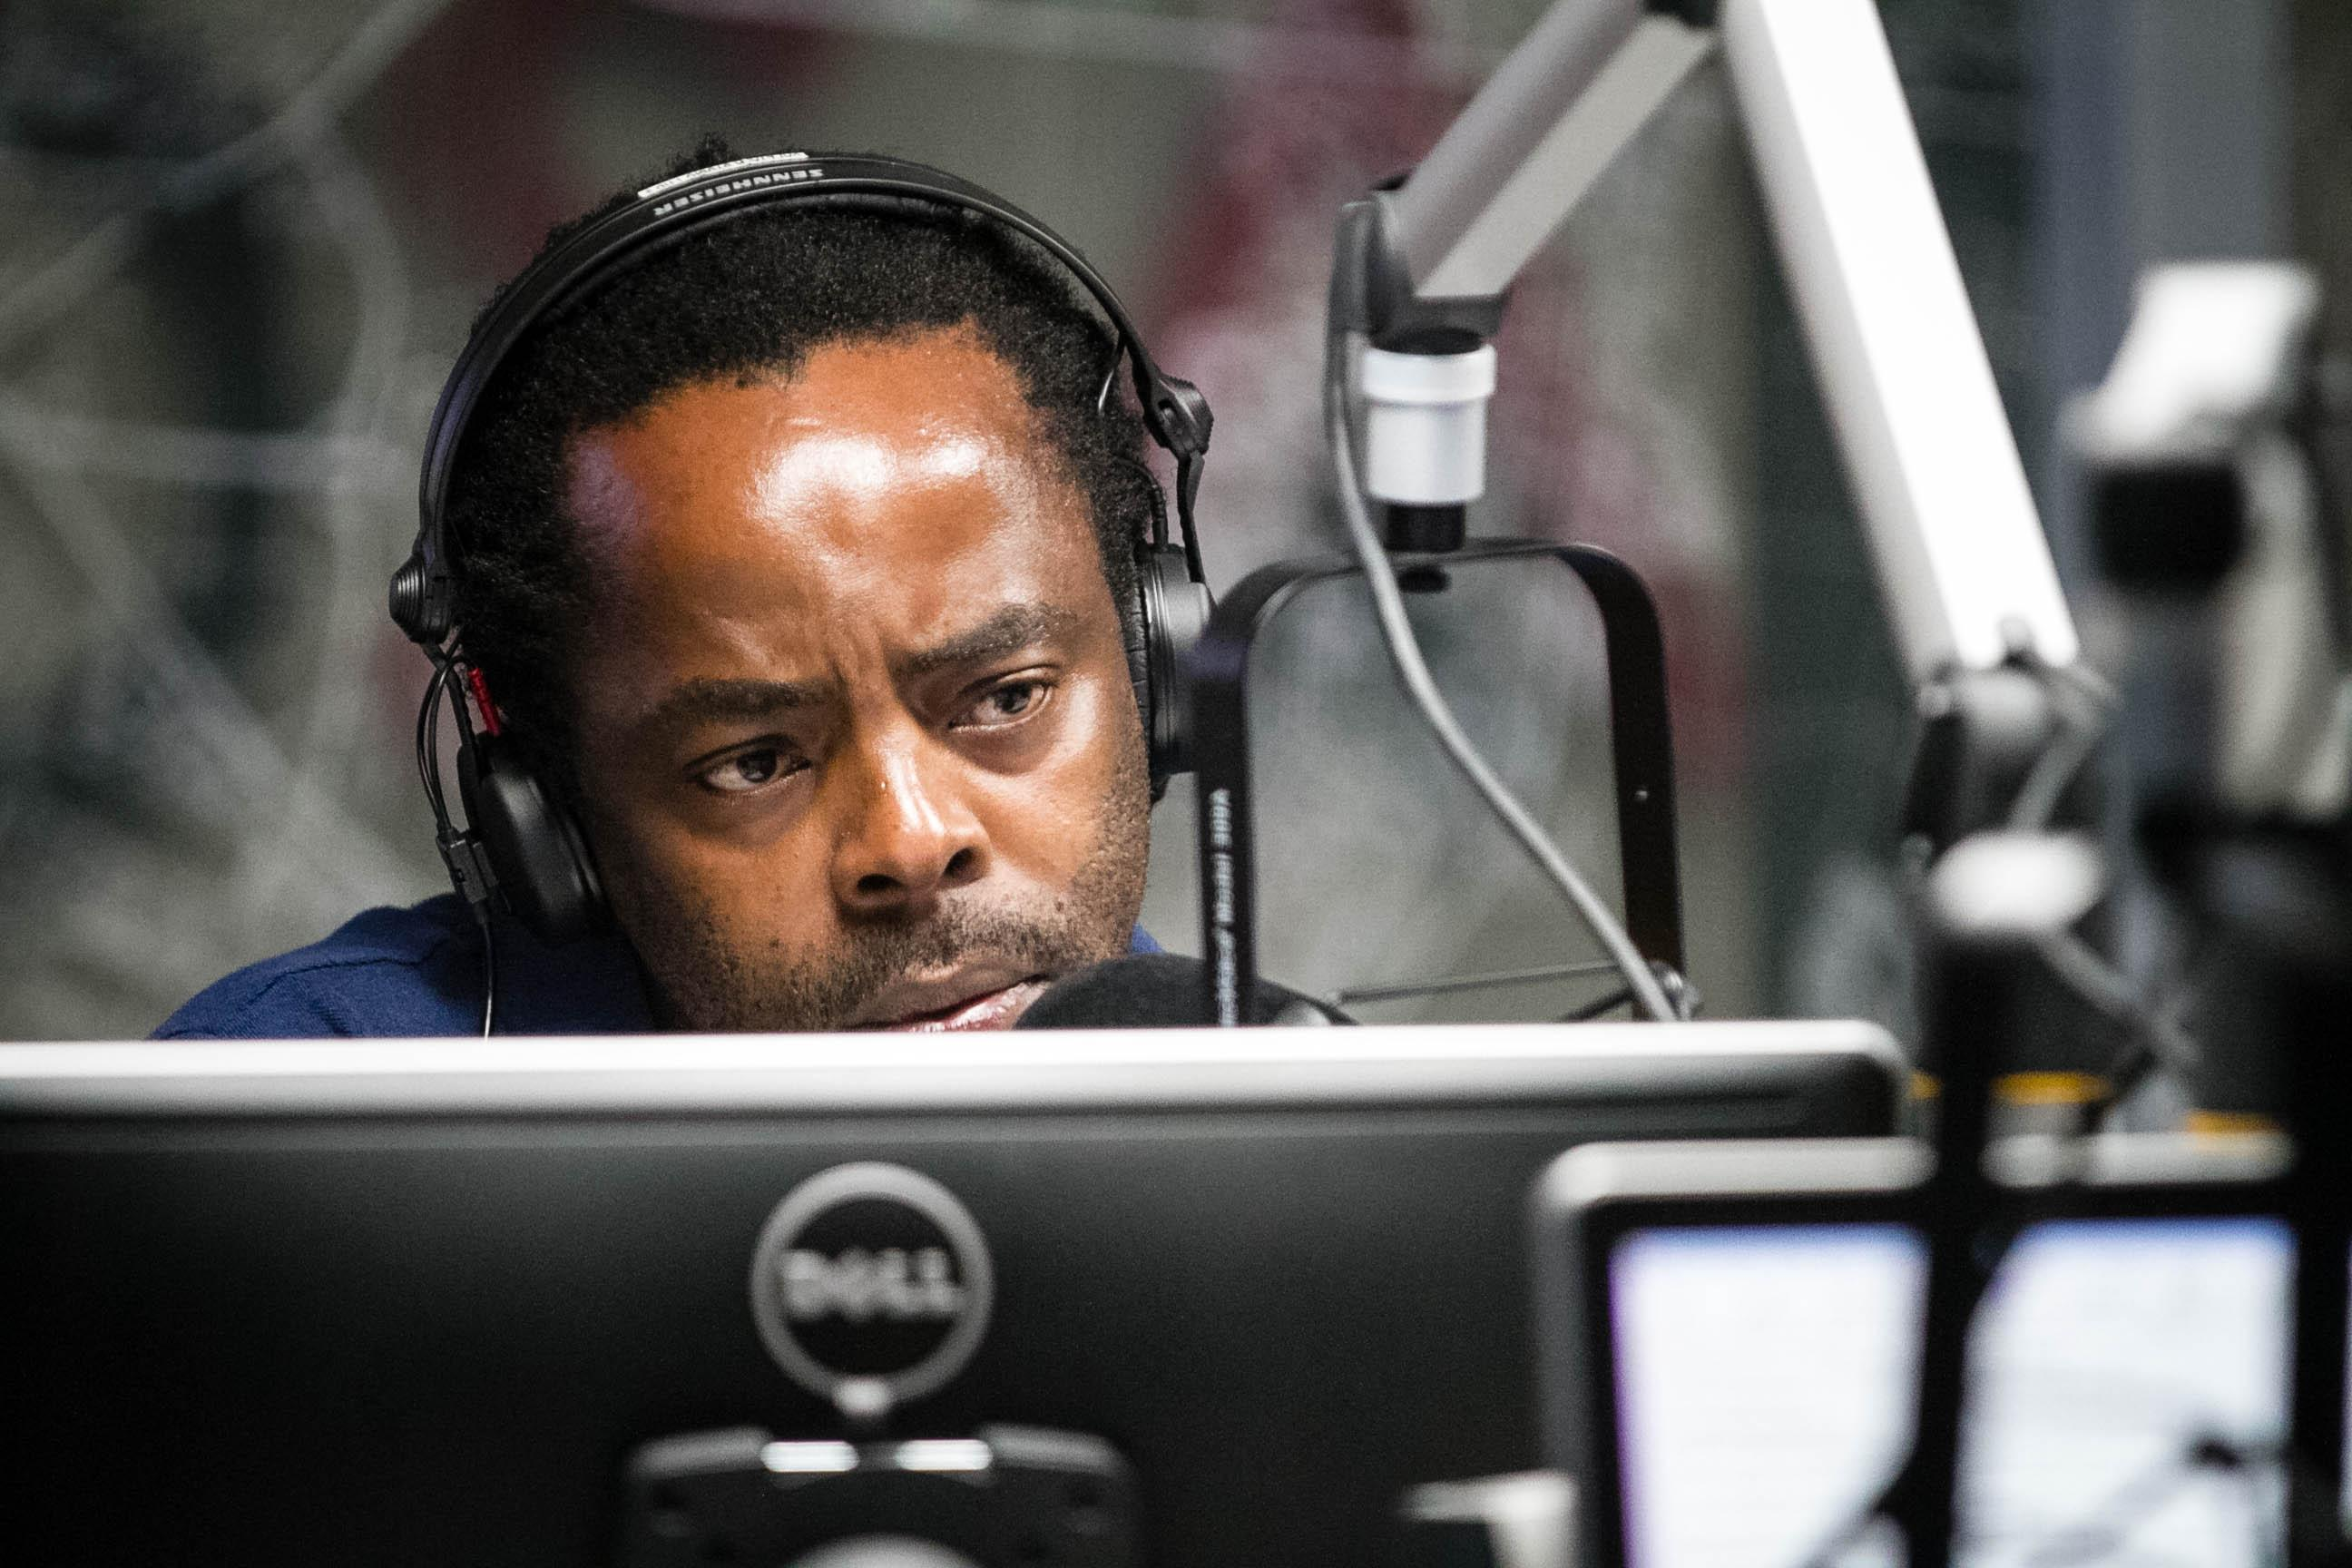 Koketso Sachane, host of a popular radio show on the Cape Talk station, says access to water is a problem beyond Cape Town's city limits. (Lily Martin/CBC)